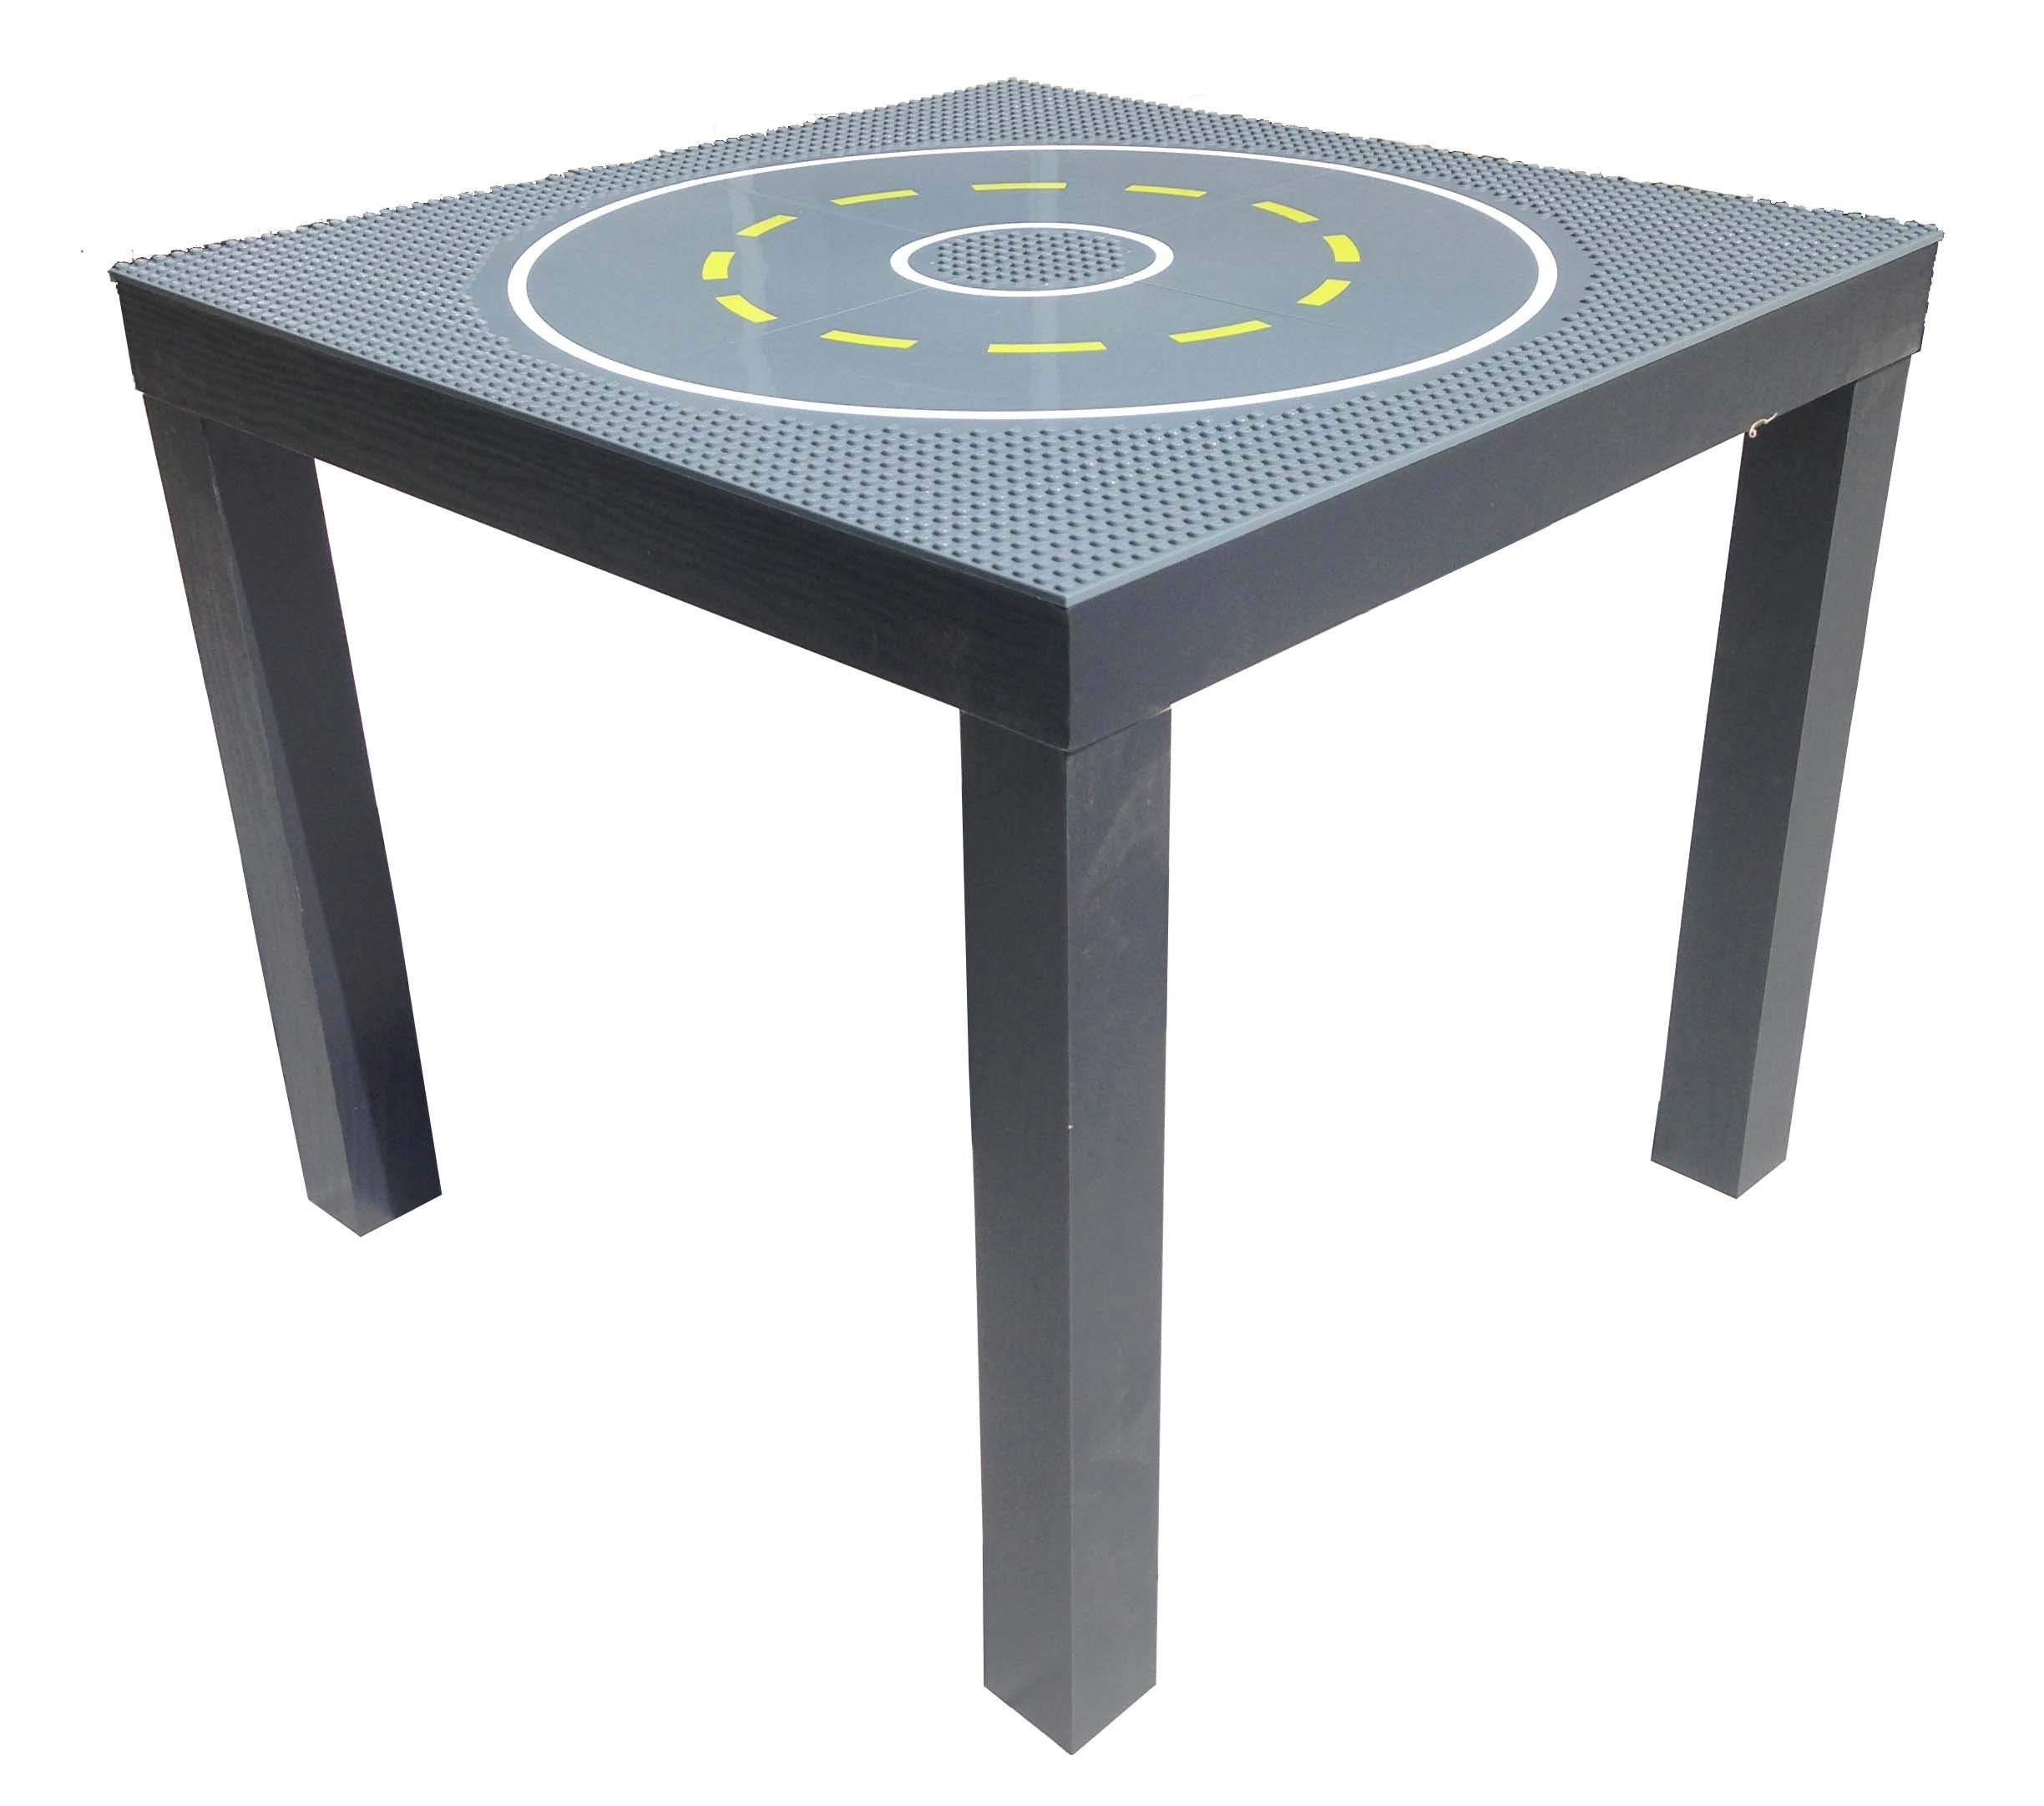 SleekSquare Building Activity Play Table Compatible with Lego, Mega Blok and Kre-O (Road)